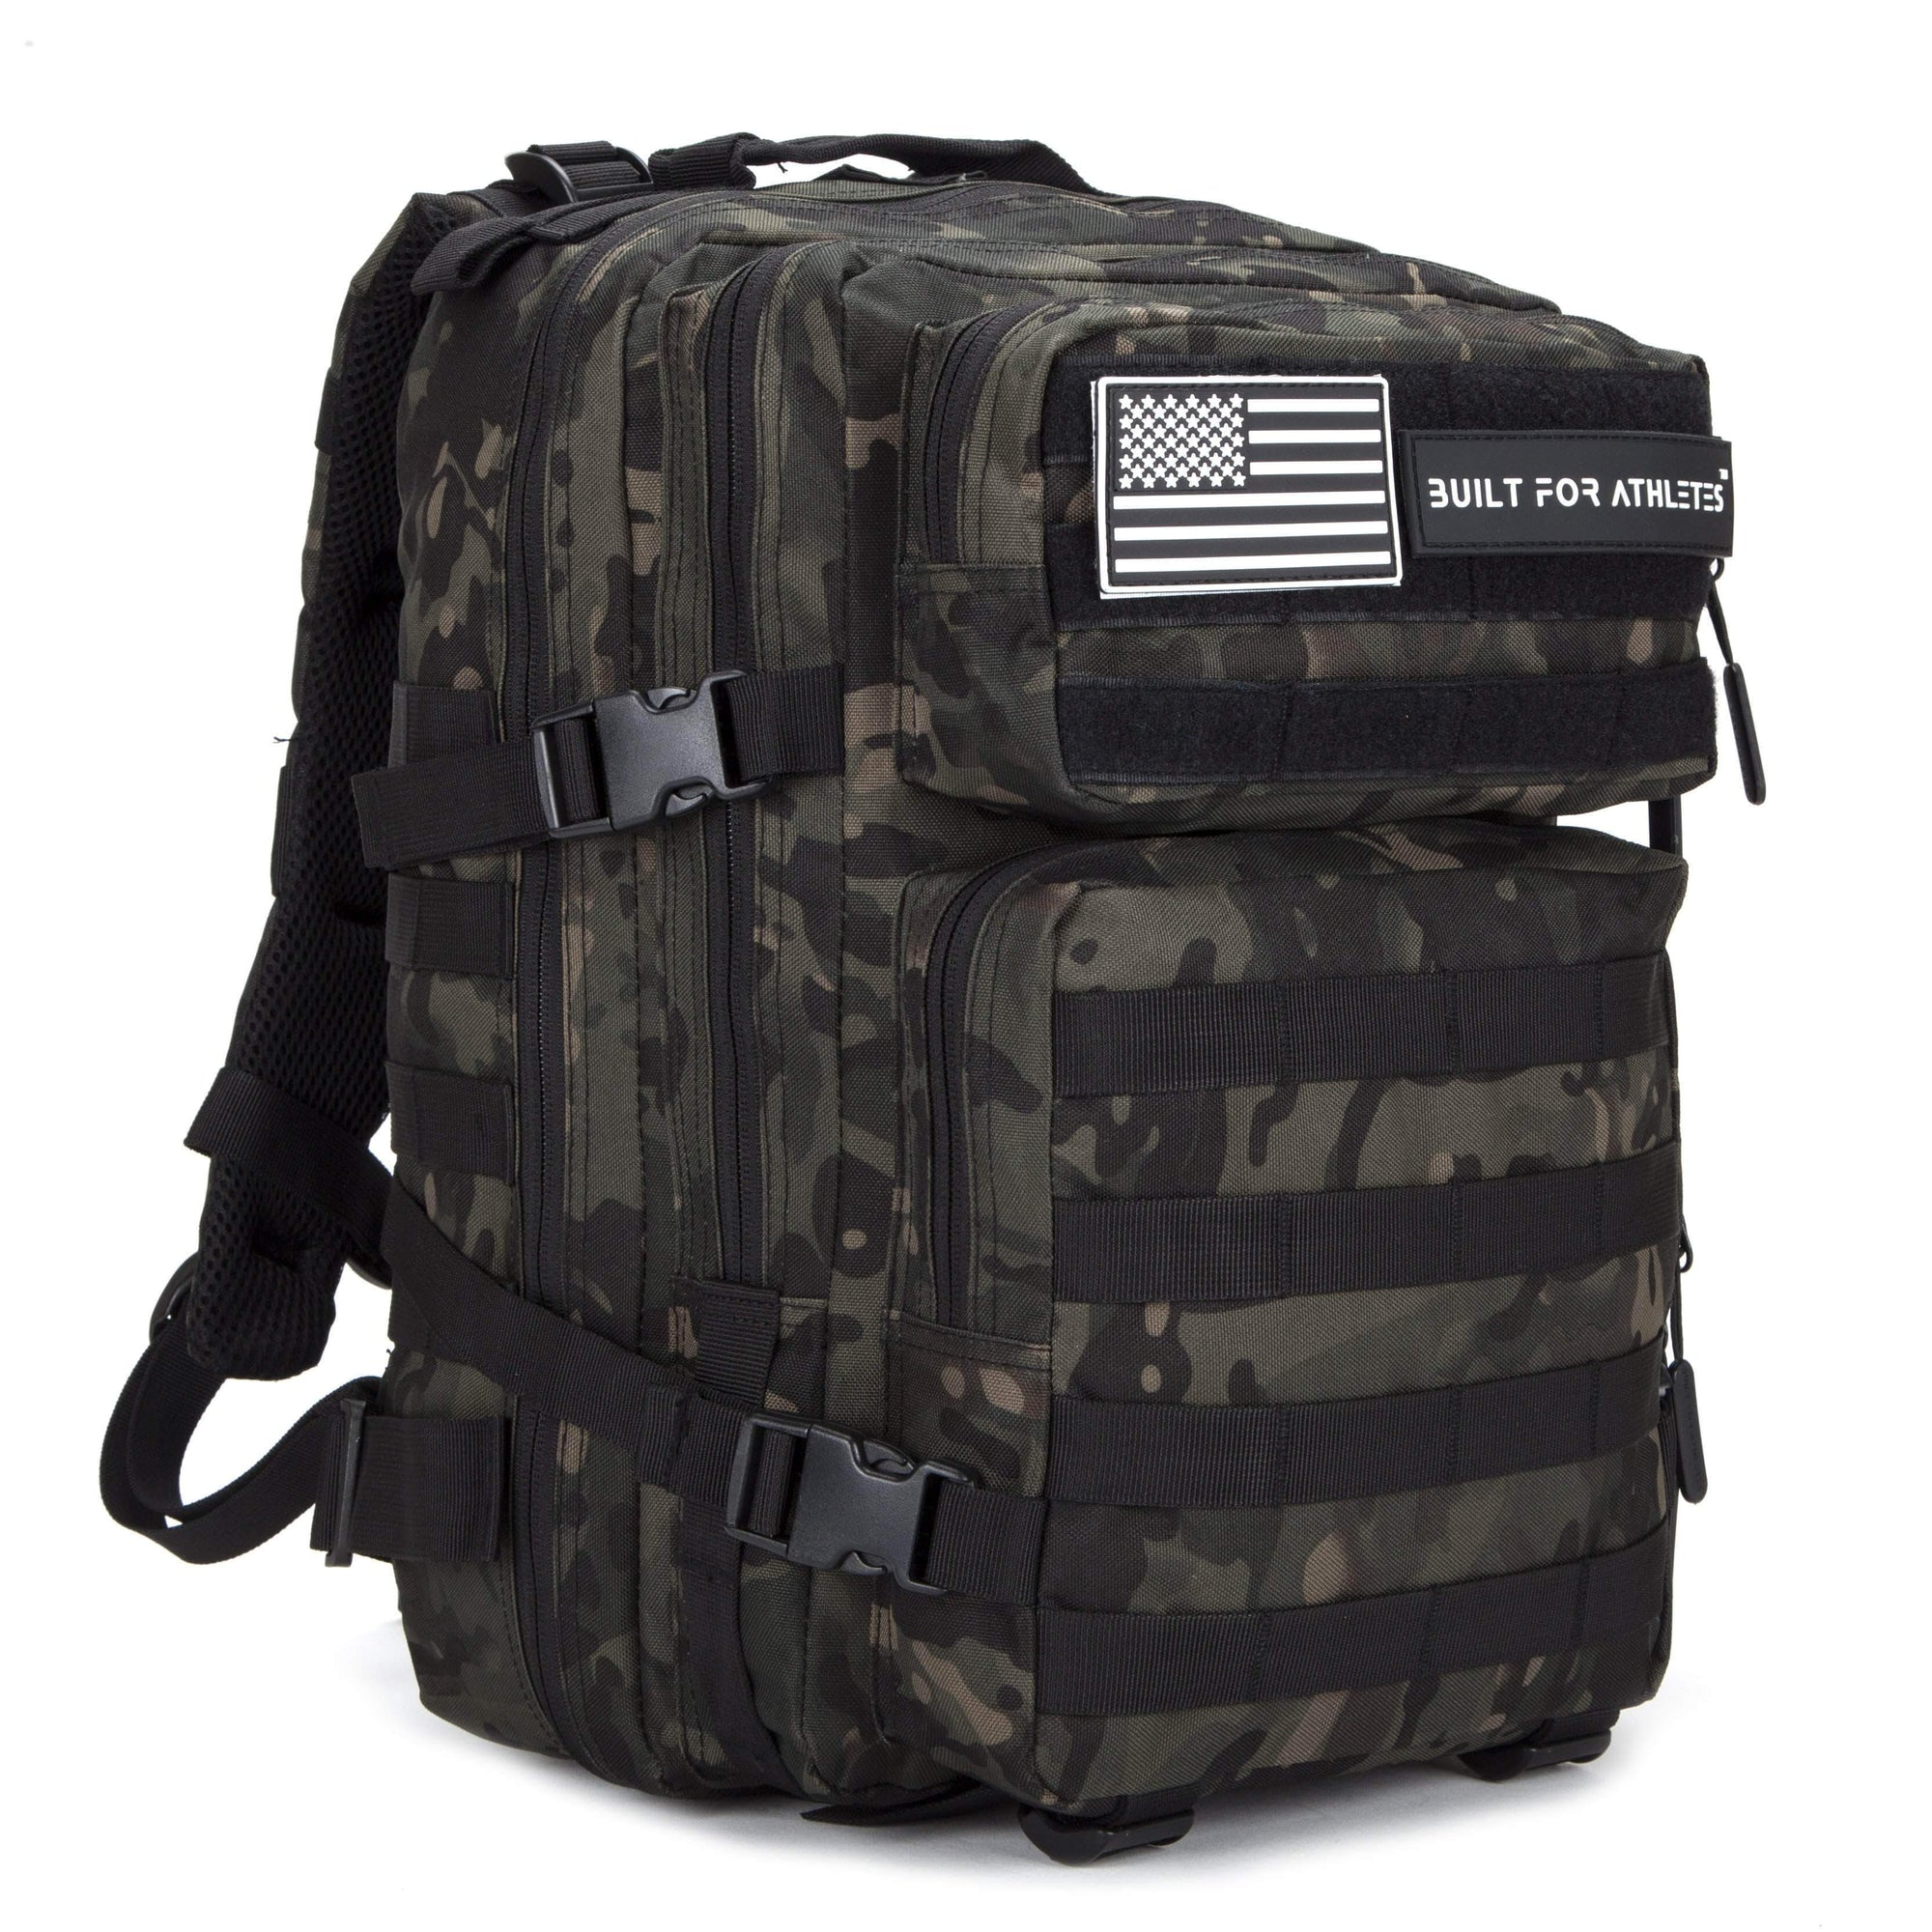 Built for Athletes Backpacks 25L Black Camo Hero Backpack